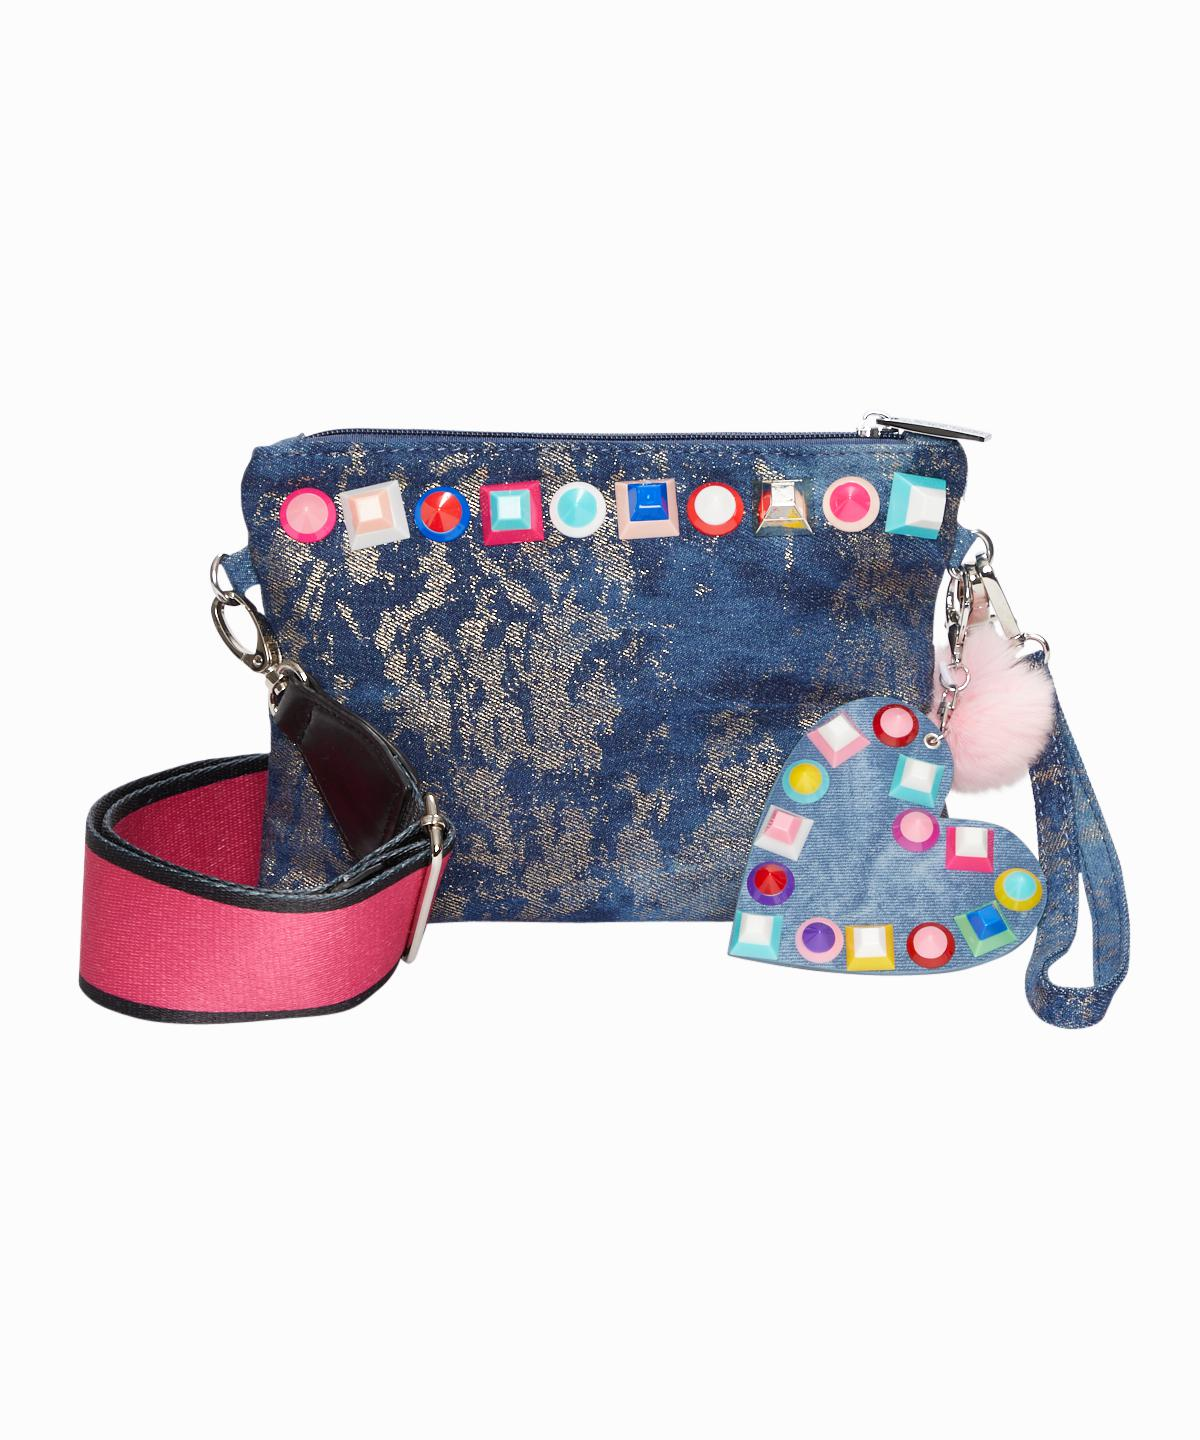 Exclusive Studded Denim Bag